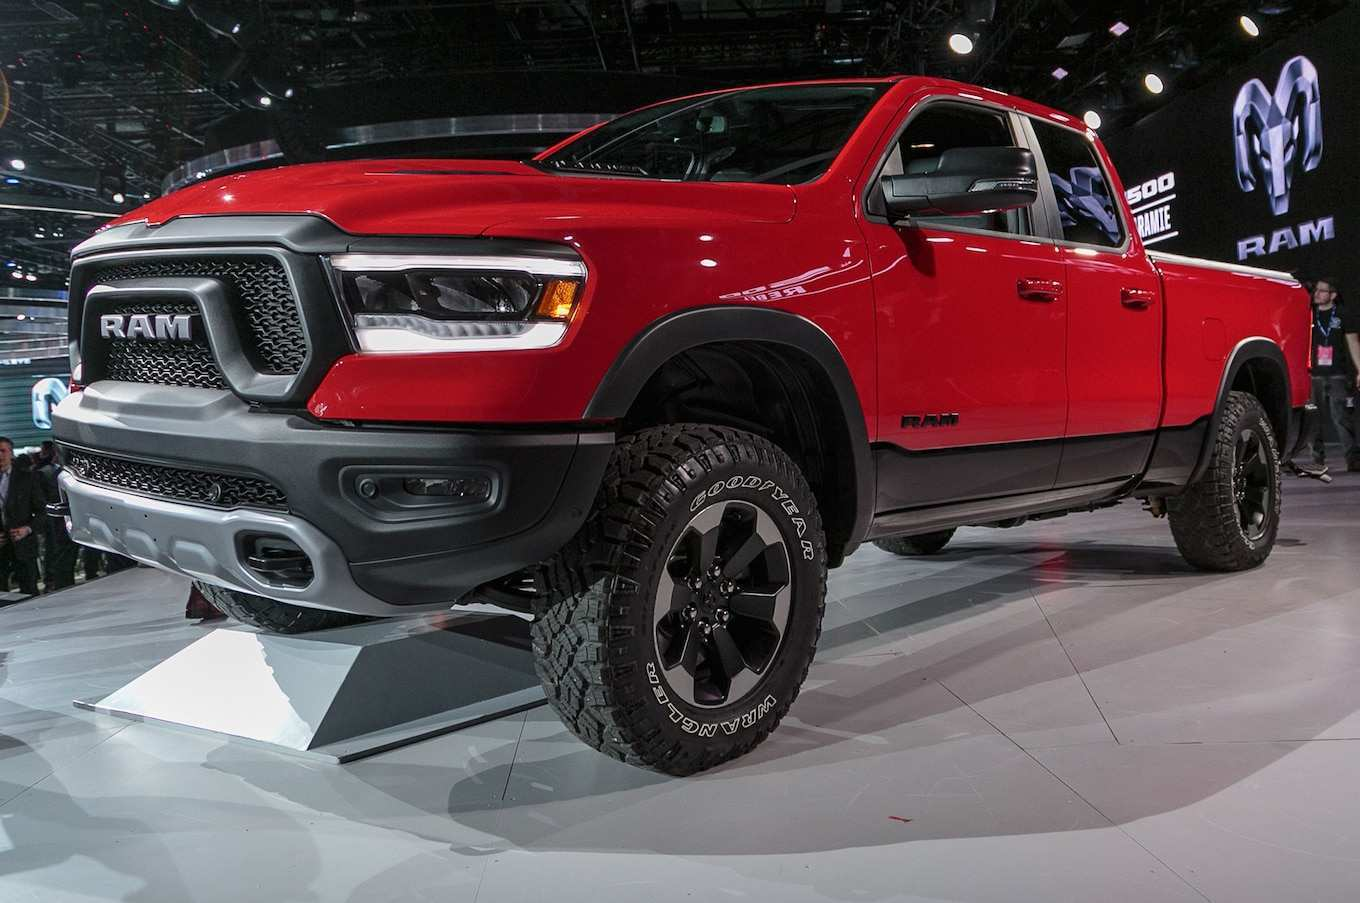 59 The Best Dodge Laramie 2019 Concept Pictures by Best Dodge Laramie 2019 Concept